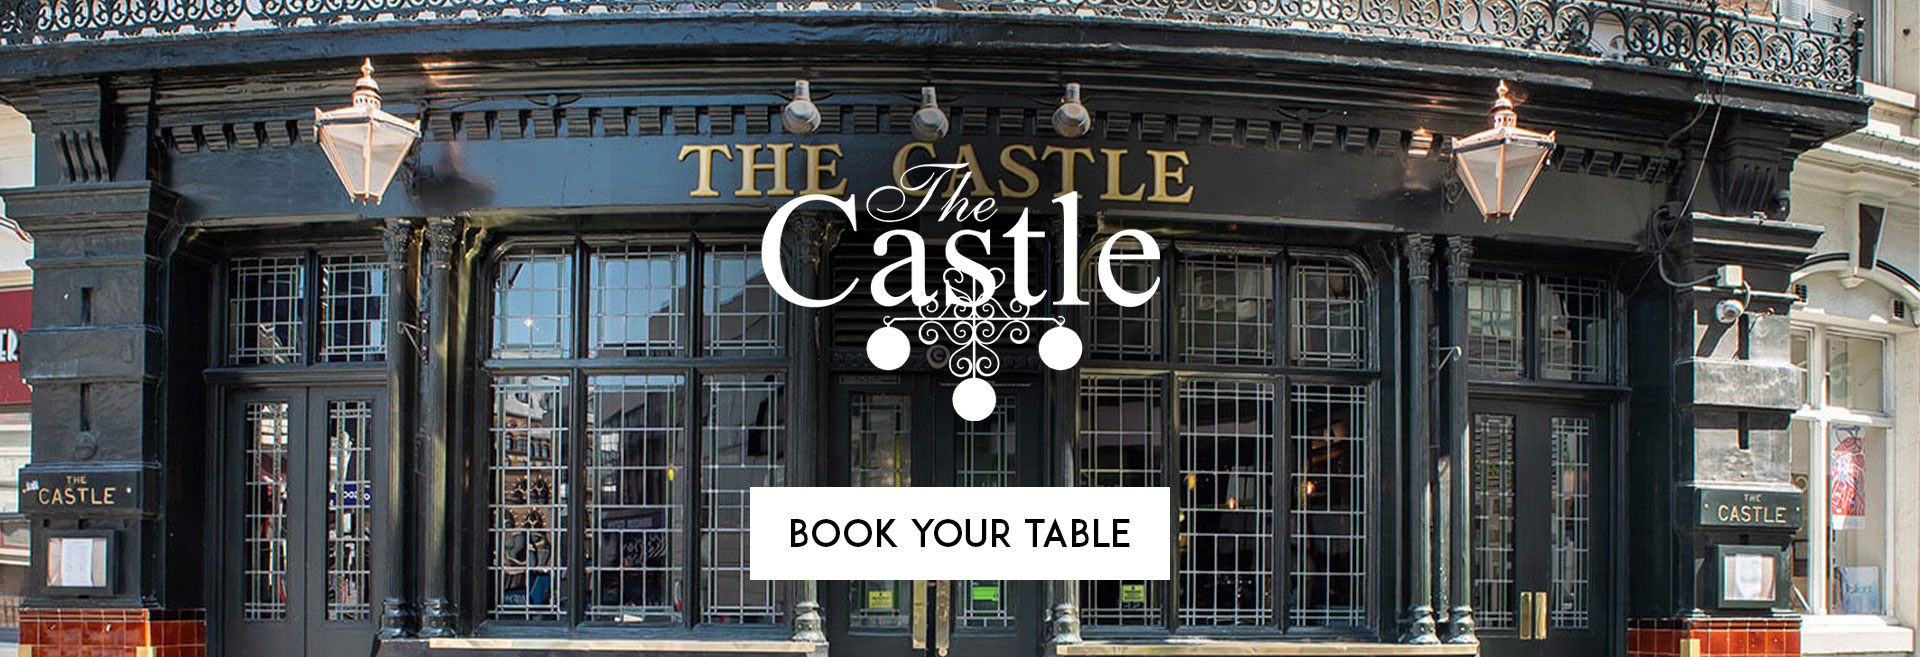 Book Your Table The Castle